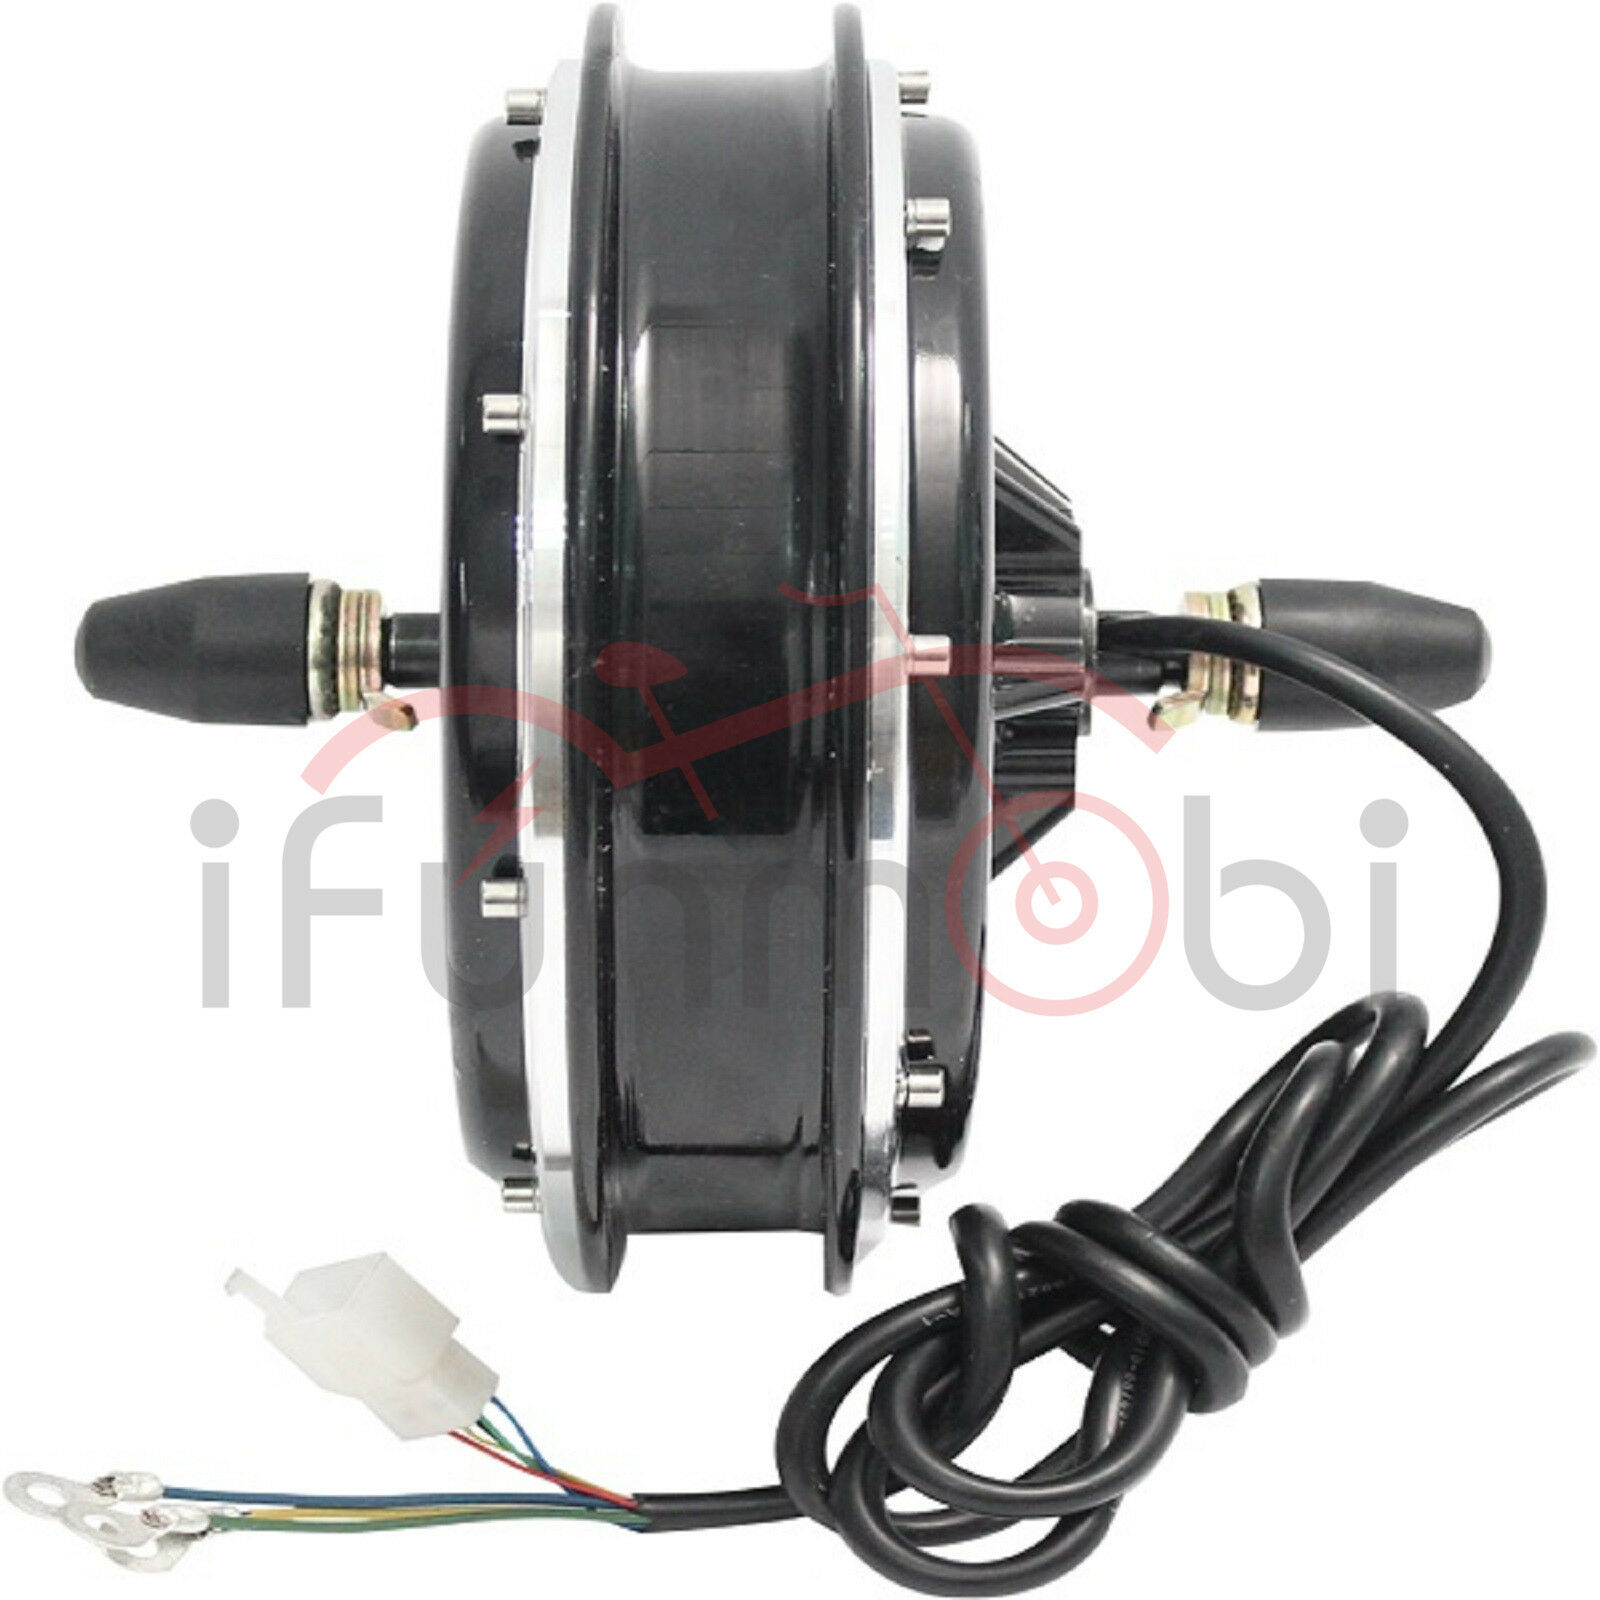 36v 48v 1000w Brushless Gearless Dc Front Wheel Hub Motor For Electric Bicycle Bldc From Reliable Bike 1 Of 1only 4 Available